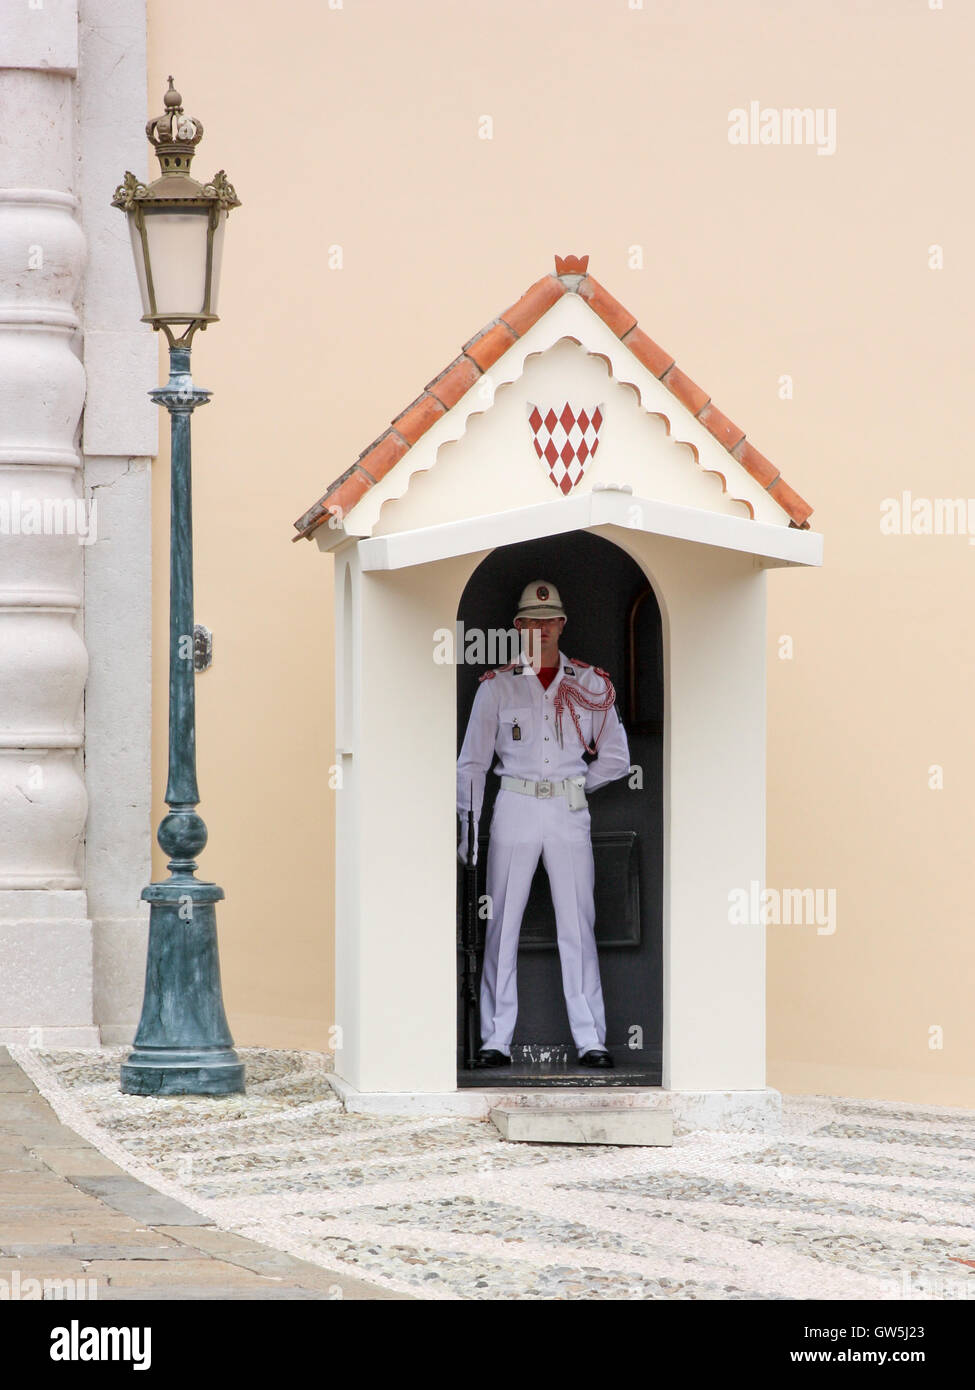 Officer in dress uniform guarding the entrance - Stock Image